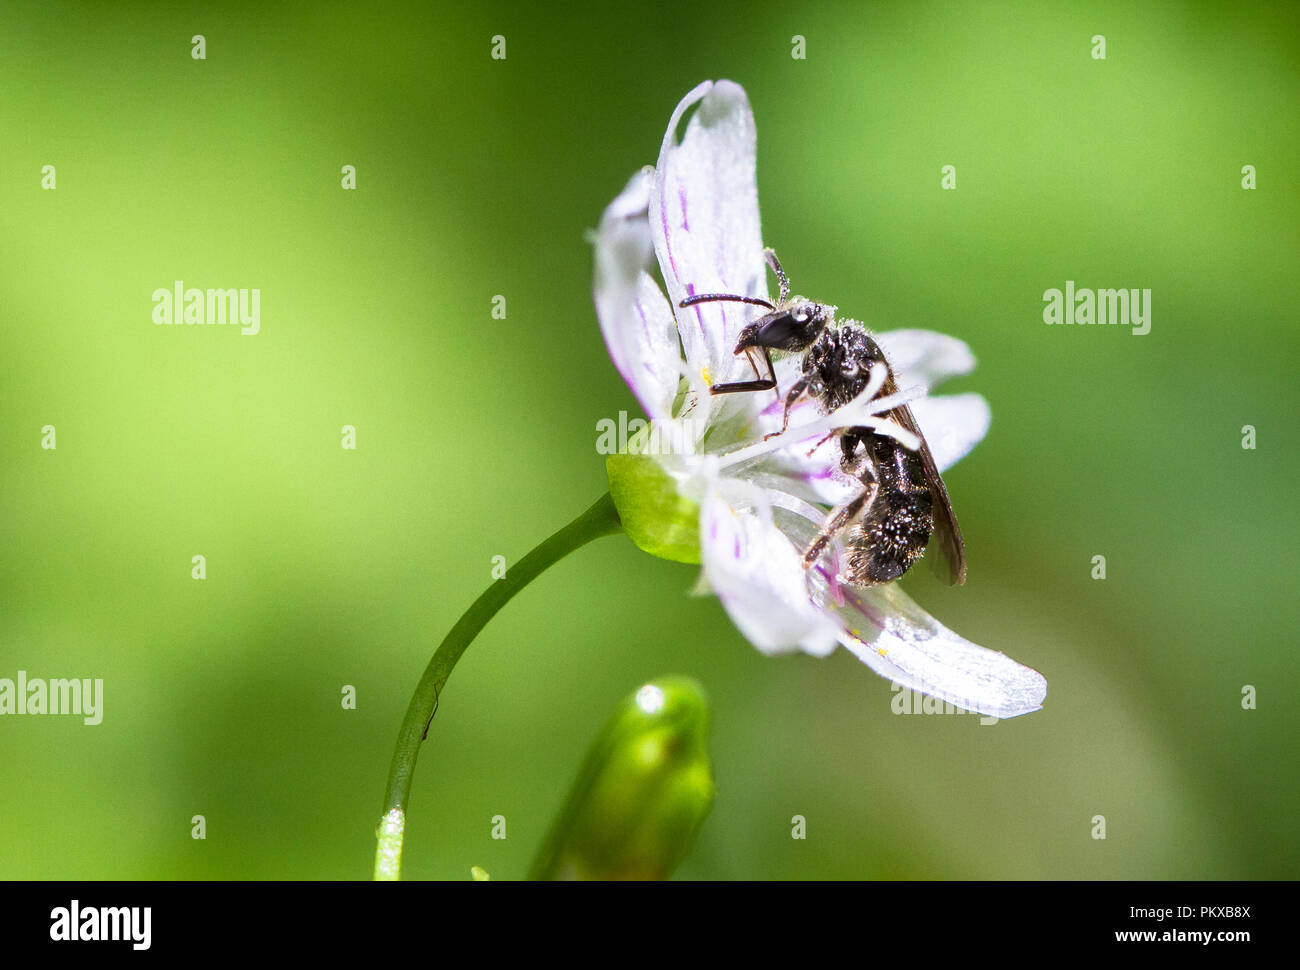 A bee collects pollen from a candy flower (Claytonia sibirica) in Oregon. Stock Photo